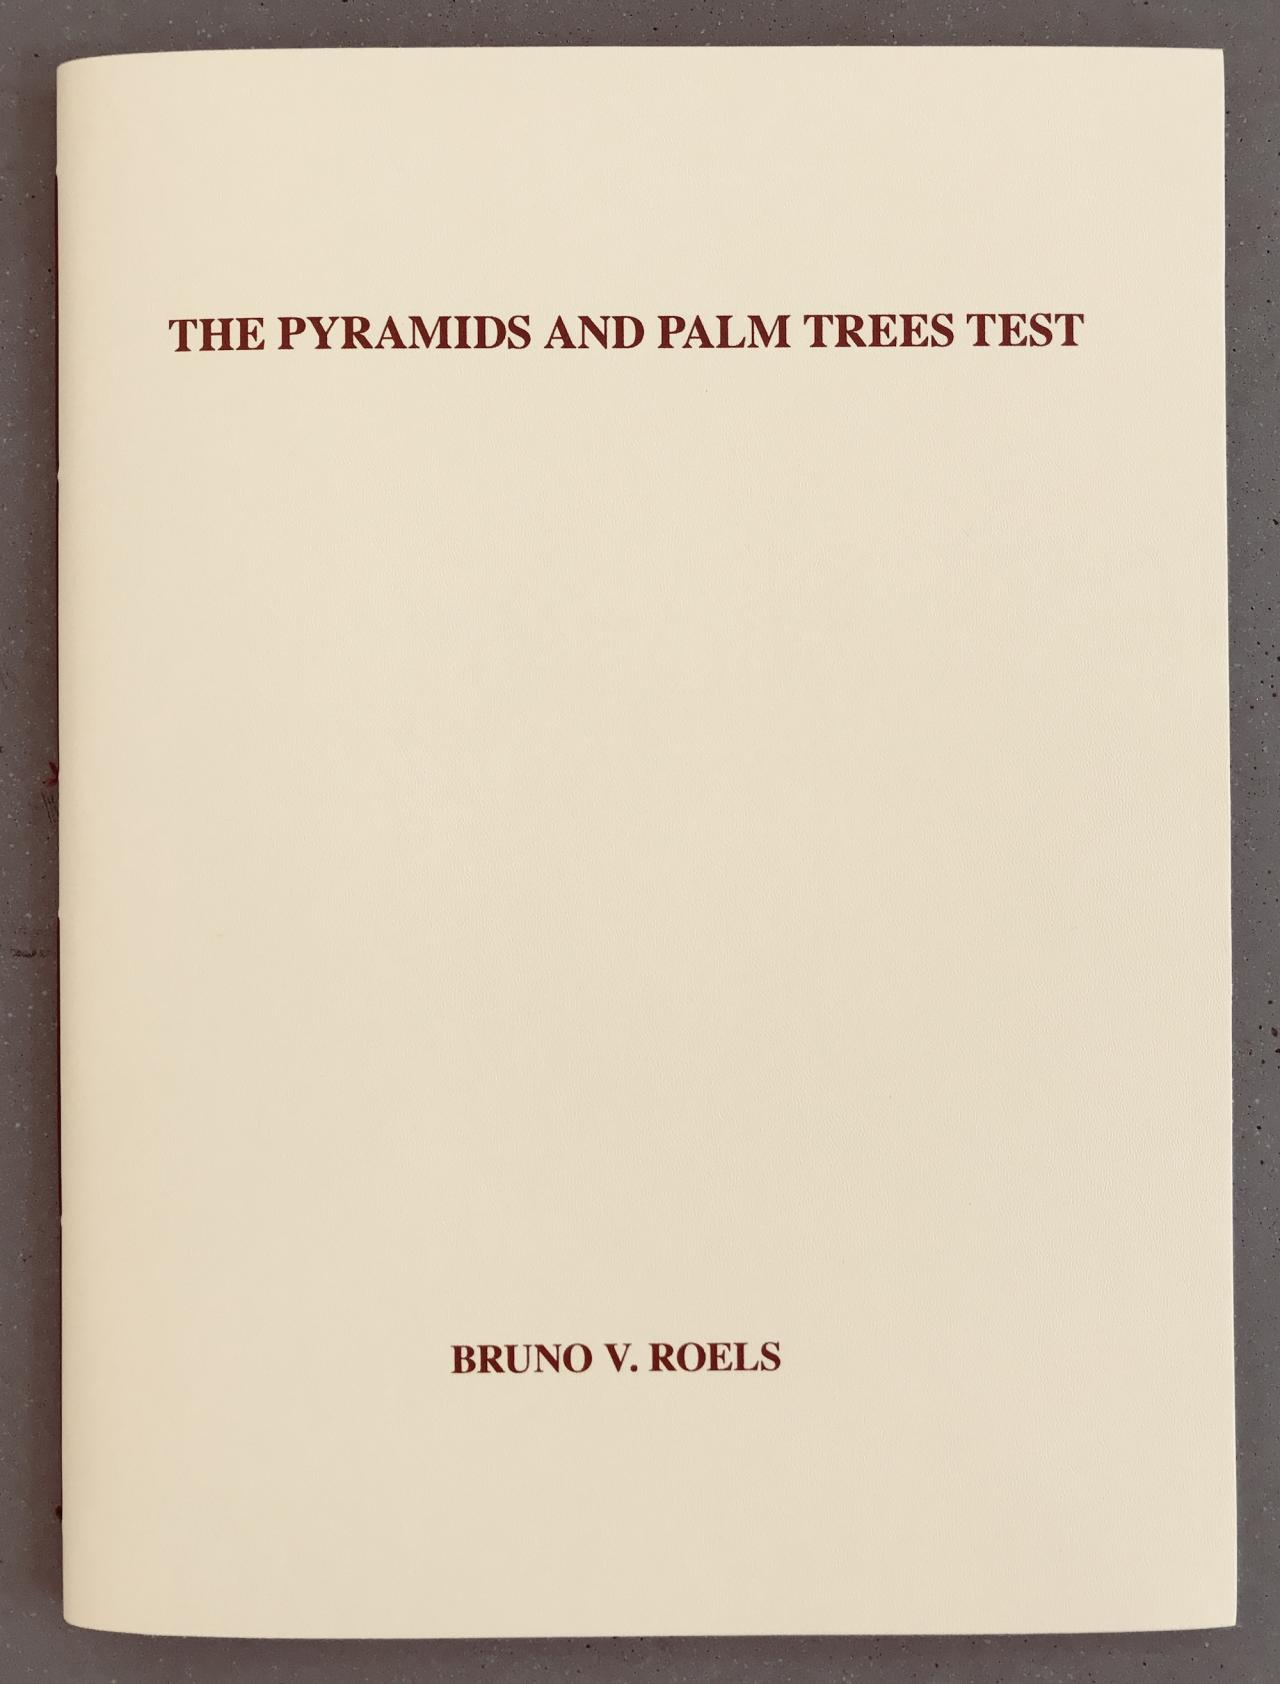 Bruno V. Roels: The Pyramids and Palm Trees Test